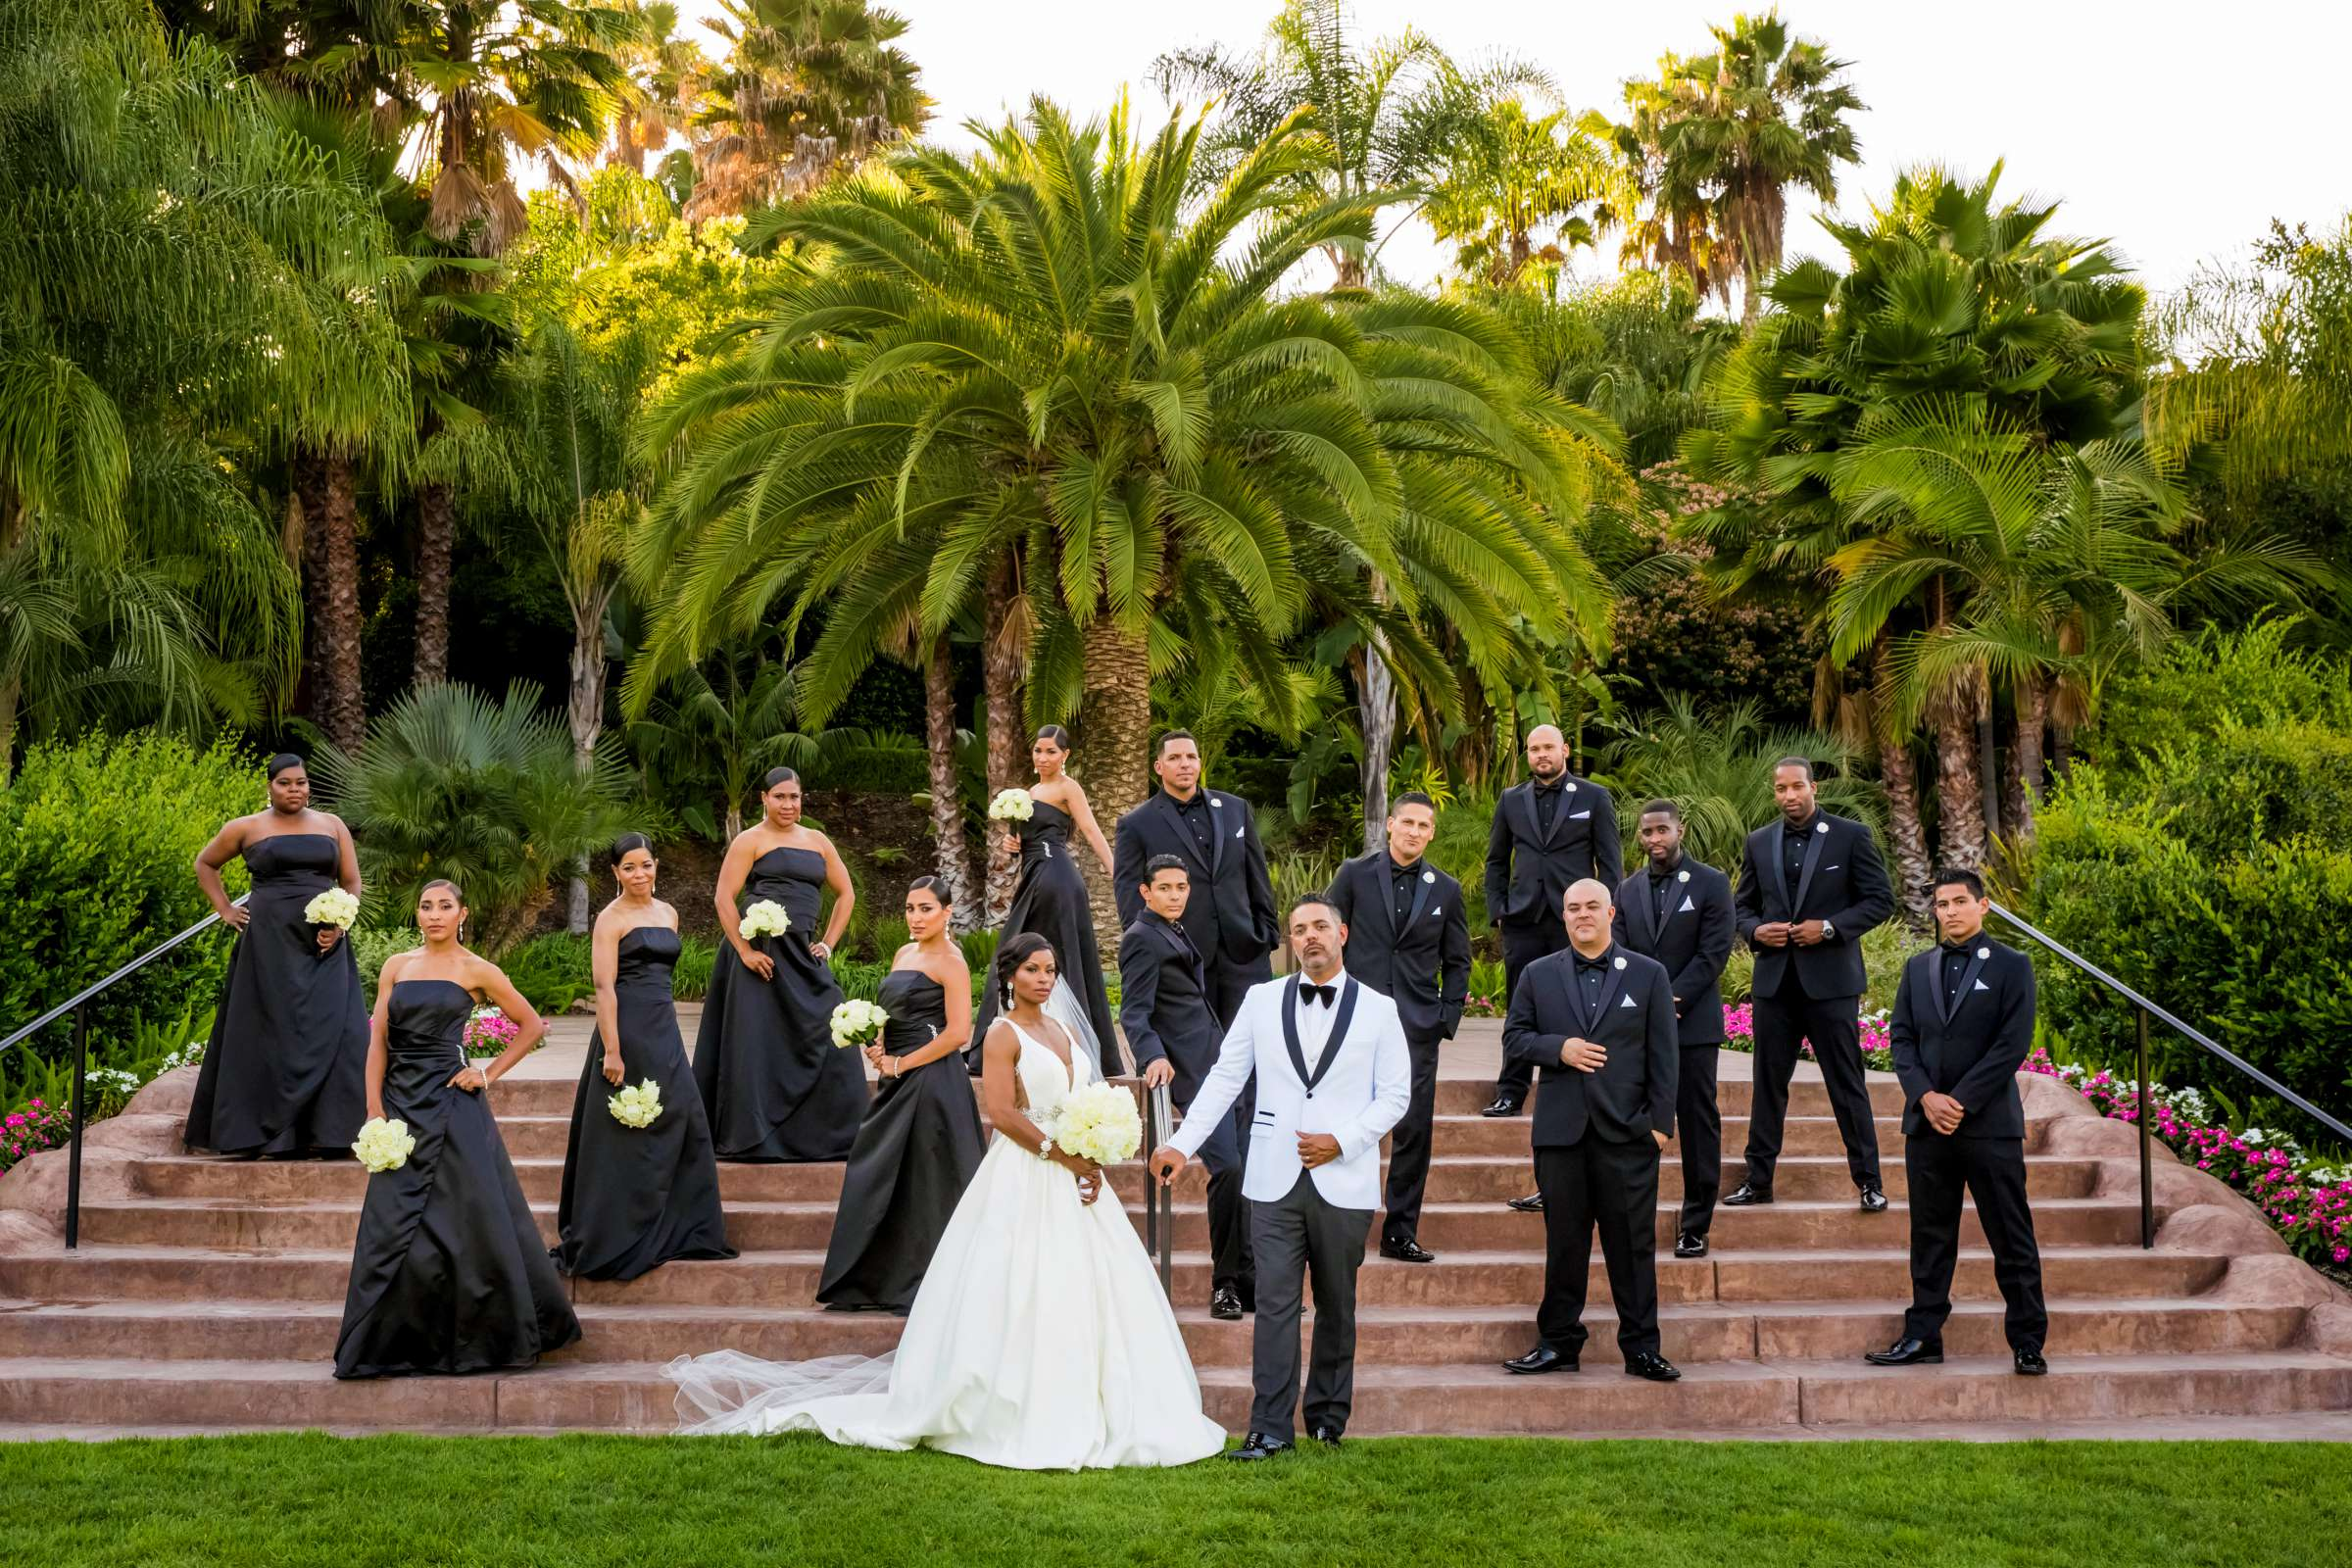 Bridal Party at Grand Tradition Estate Wedding coordinated by Grand Tradition Estate, Shantel and Sean Wedding Photo #9 by True Photography